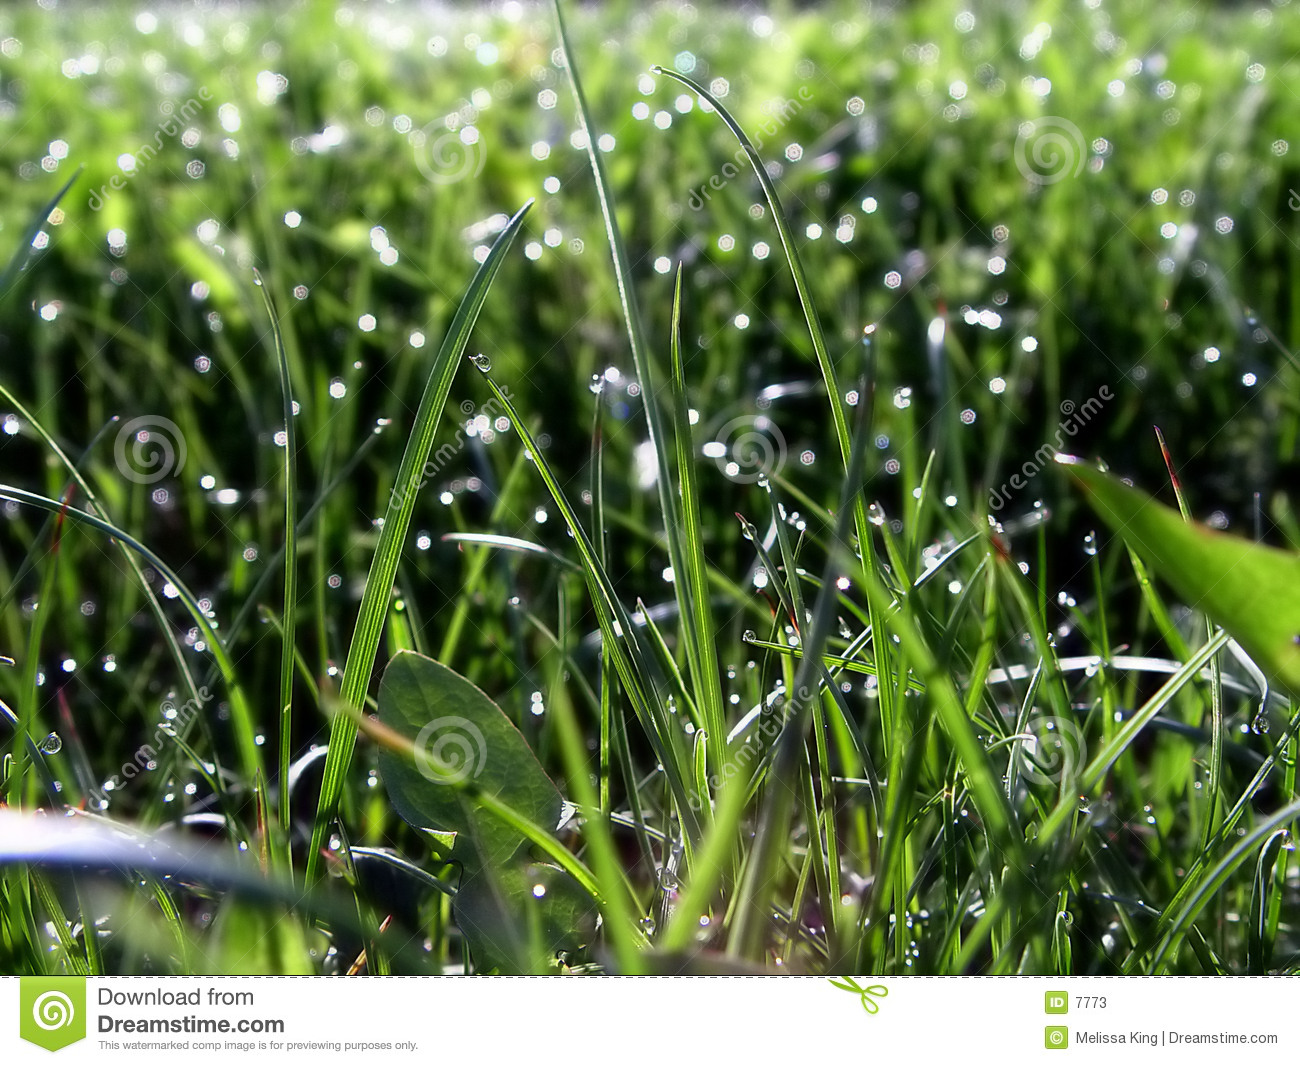 Grass on Lawn